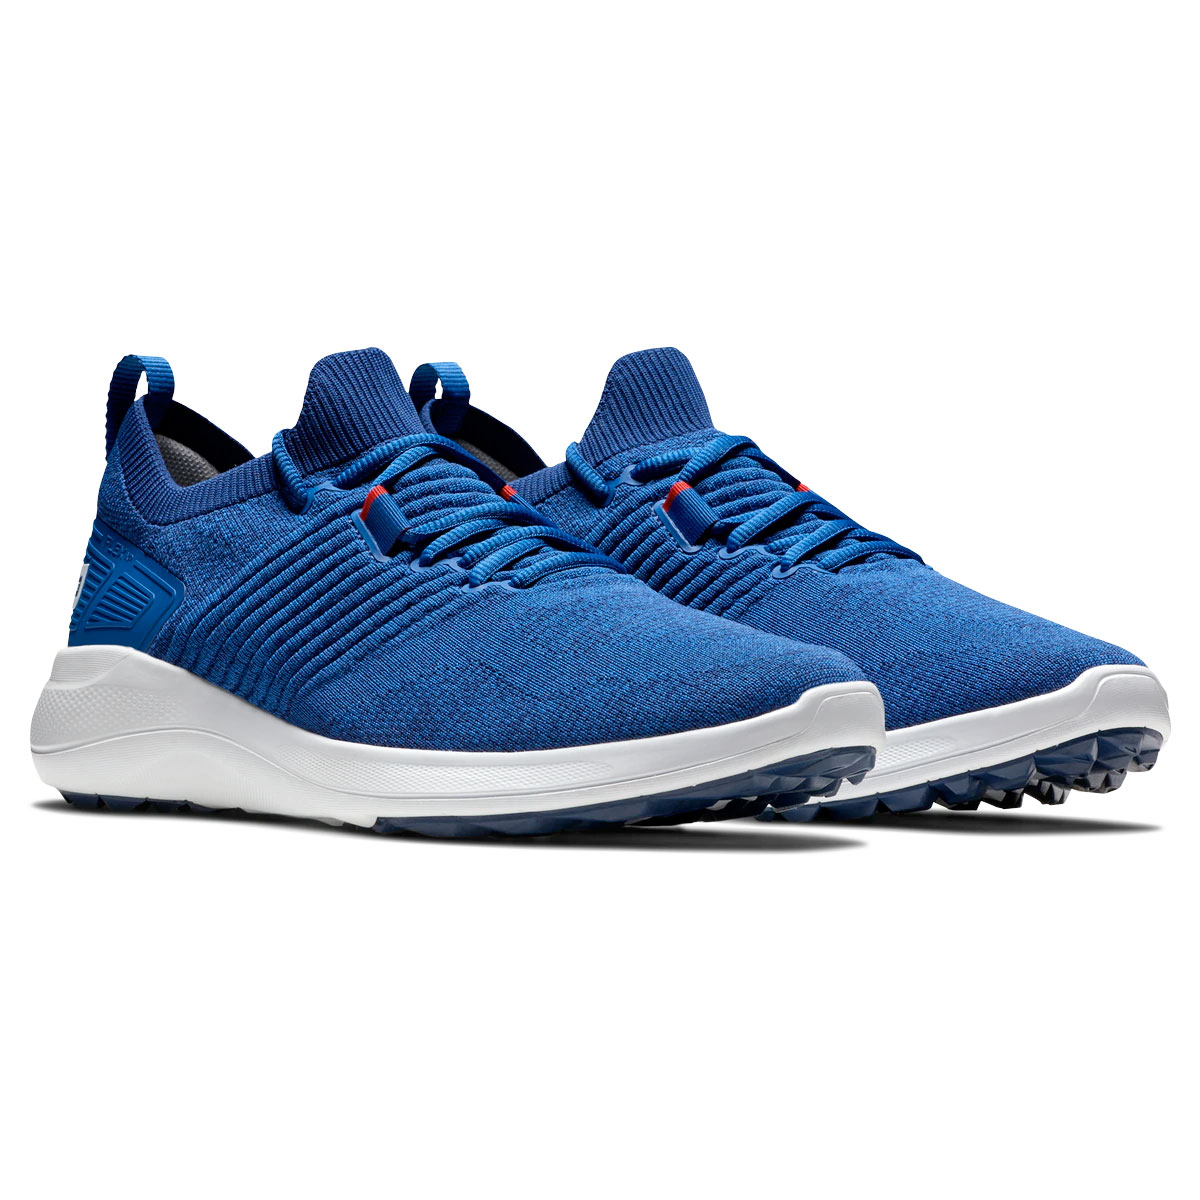 FootJoy Flex XP Mens Spikeless Golf Shoes